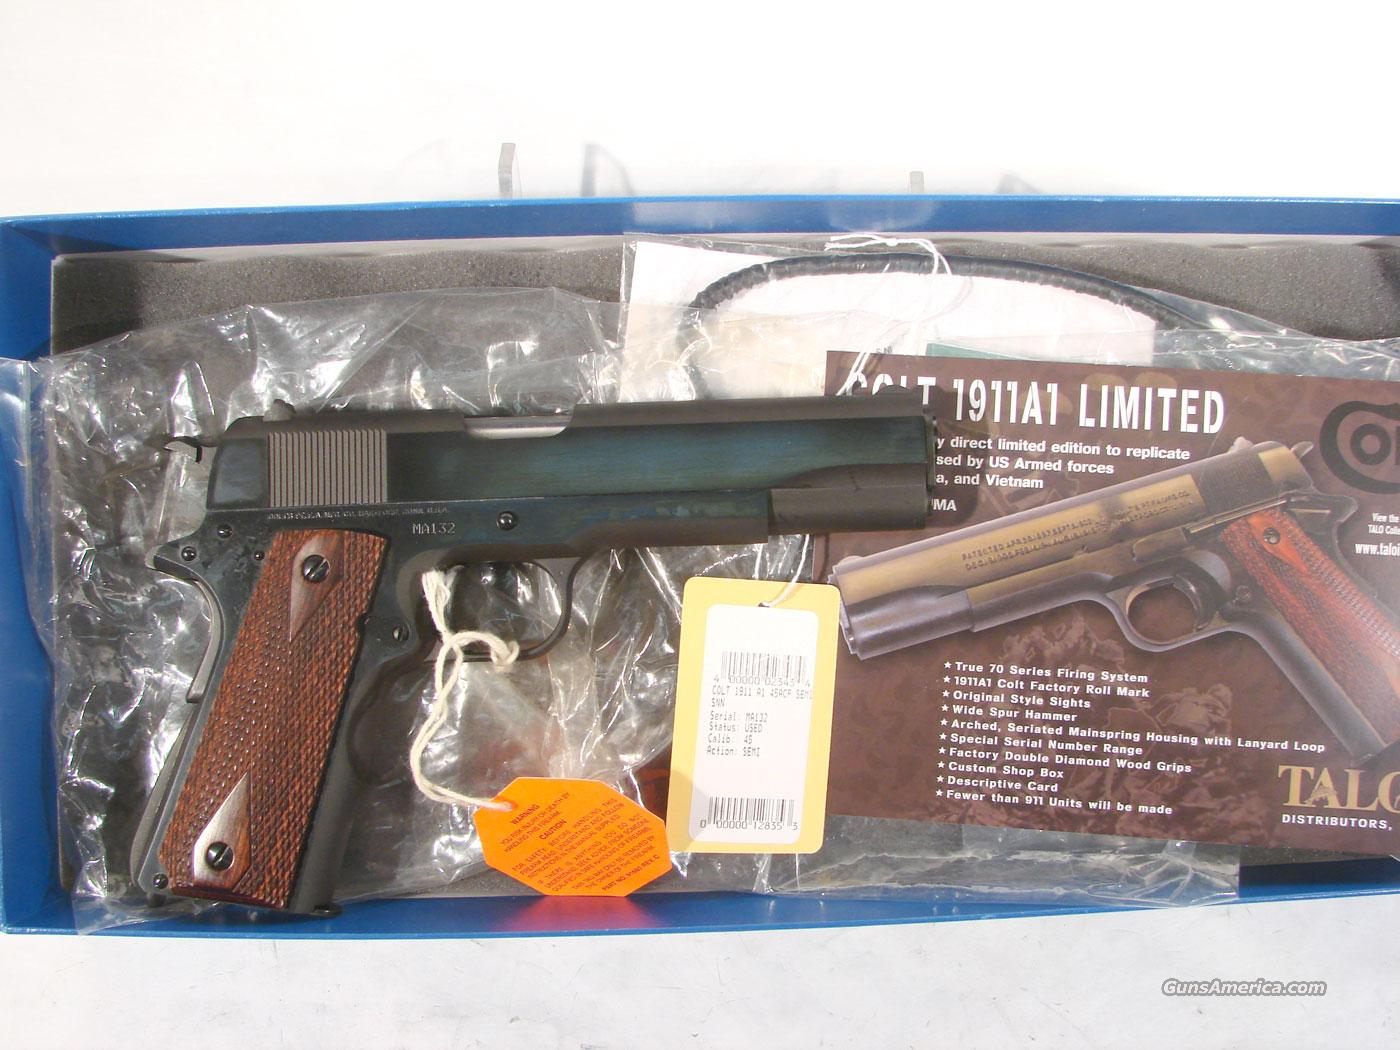 Colt 1911A1 Limited, As new